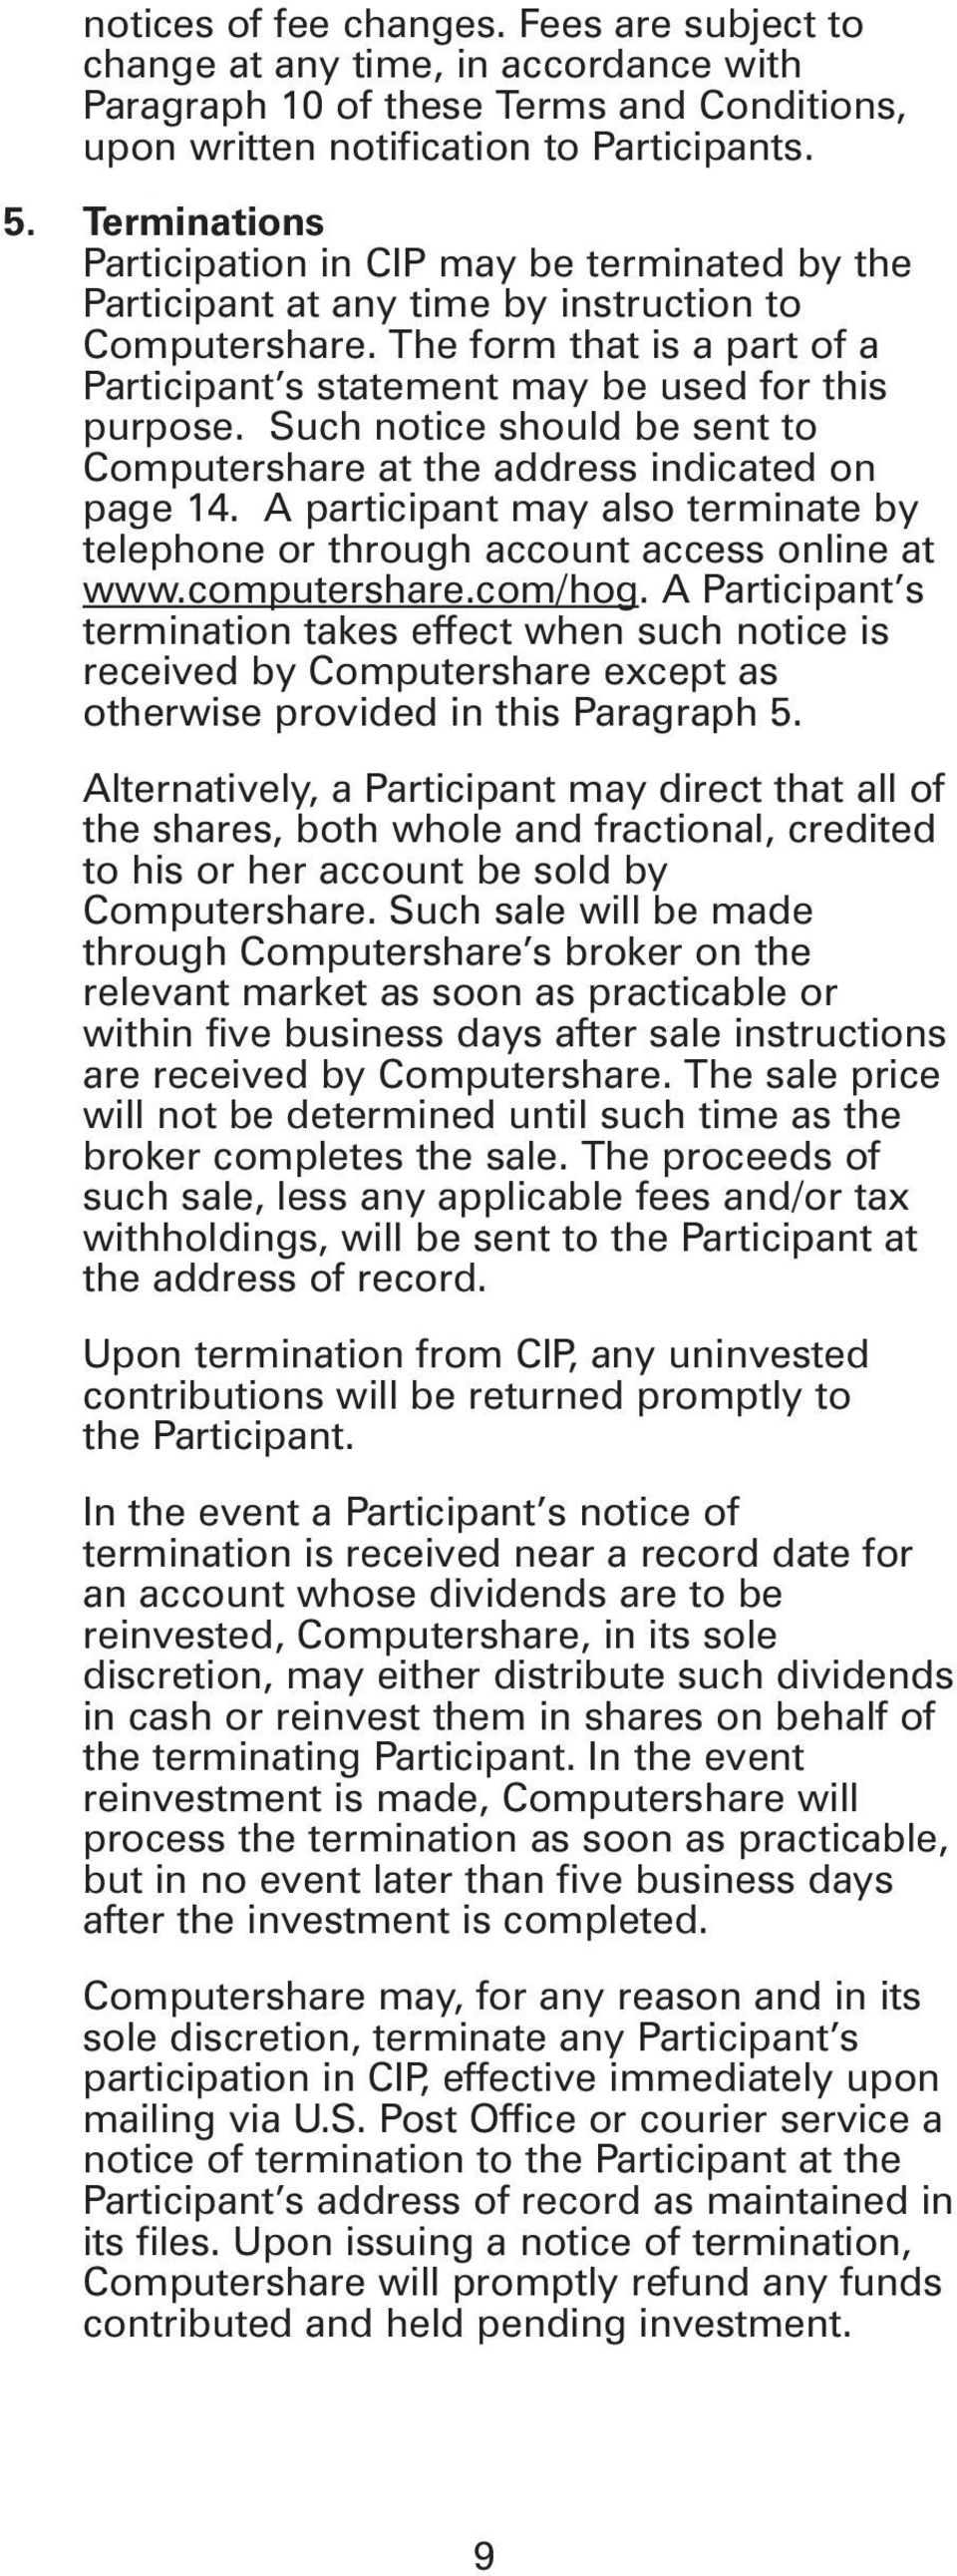 Such notice should be sent to Computershare at the address indicated on page 14. A participant may also terminate by telephone or through account access online at www.computershare.com/hog.